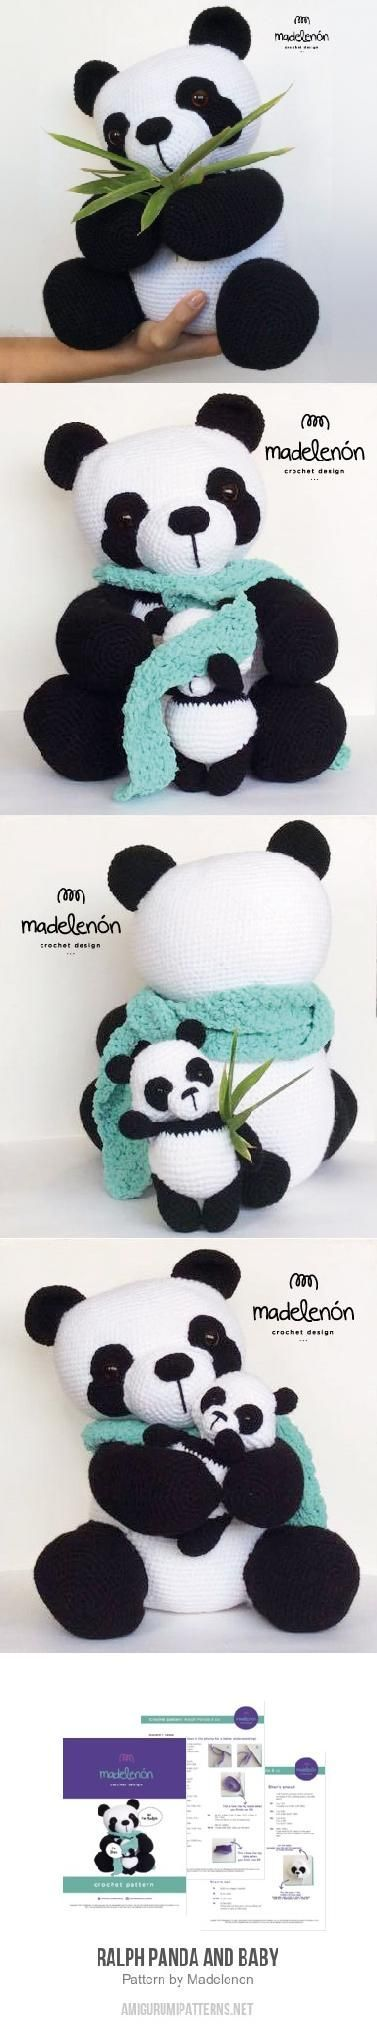 Ralph Panda and Baby amigurumi pattern by Madelenon